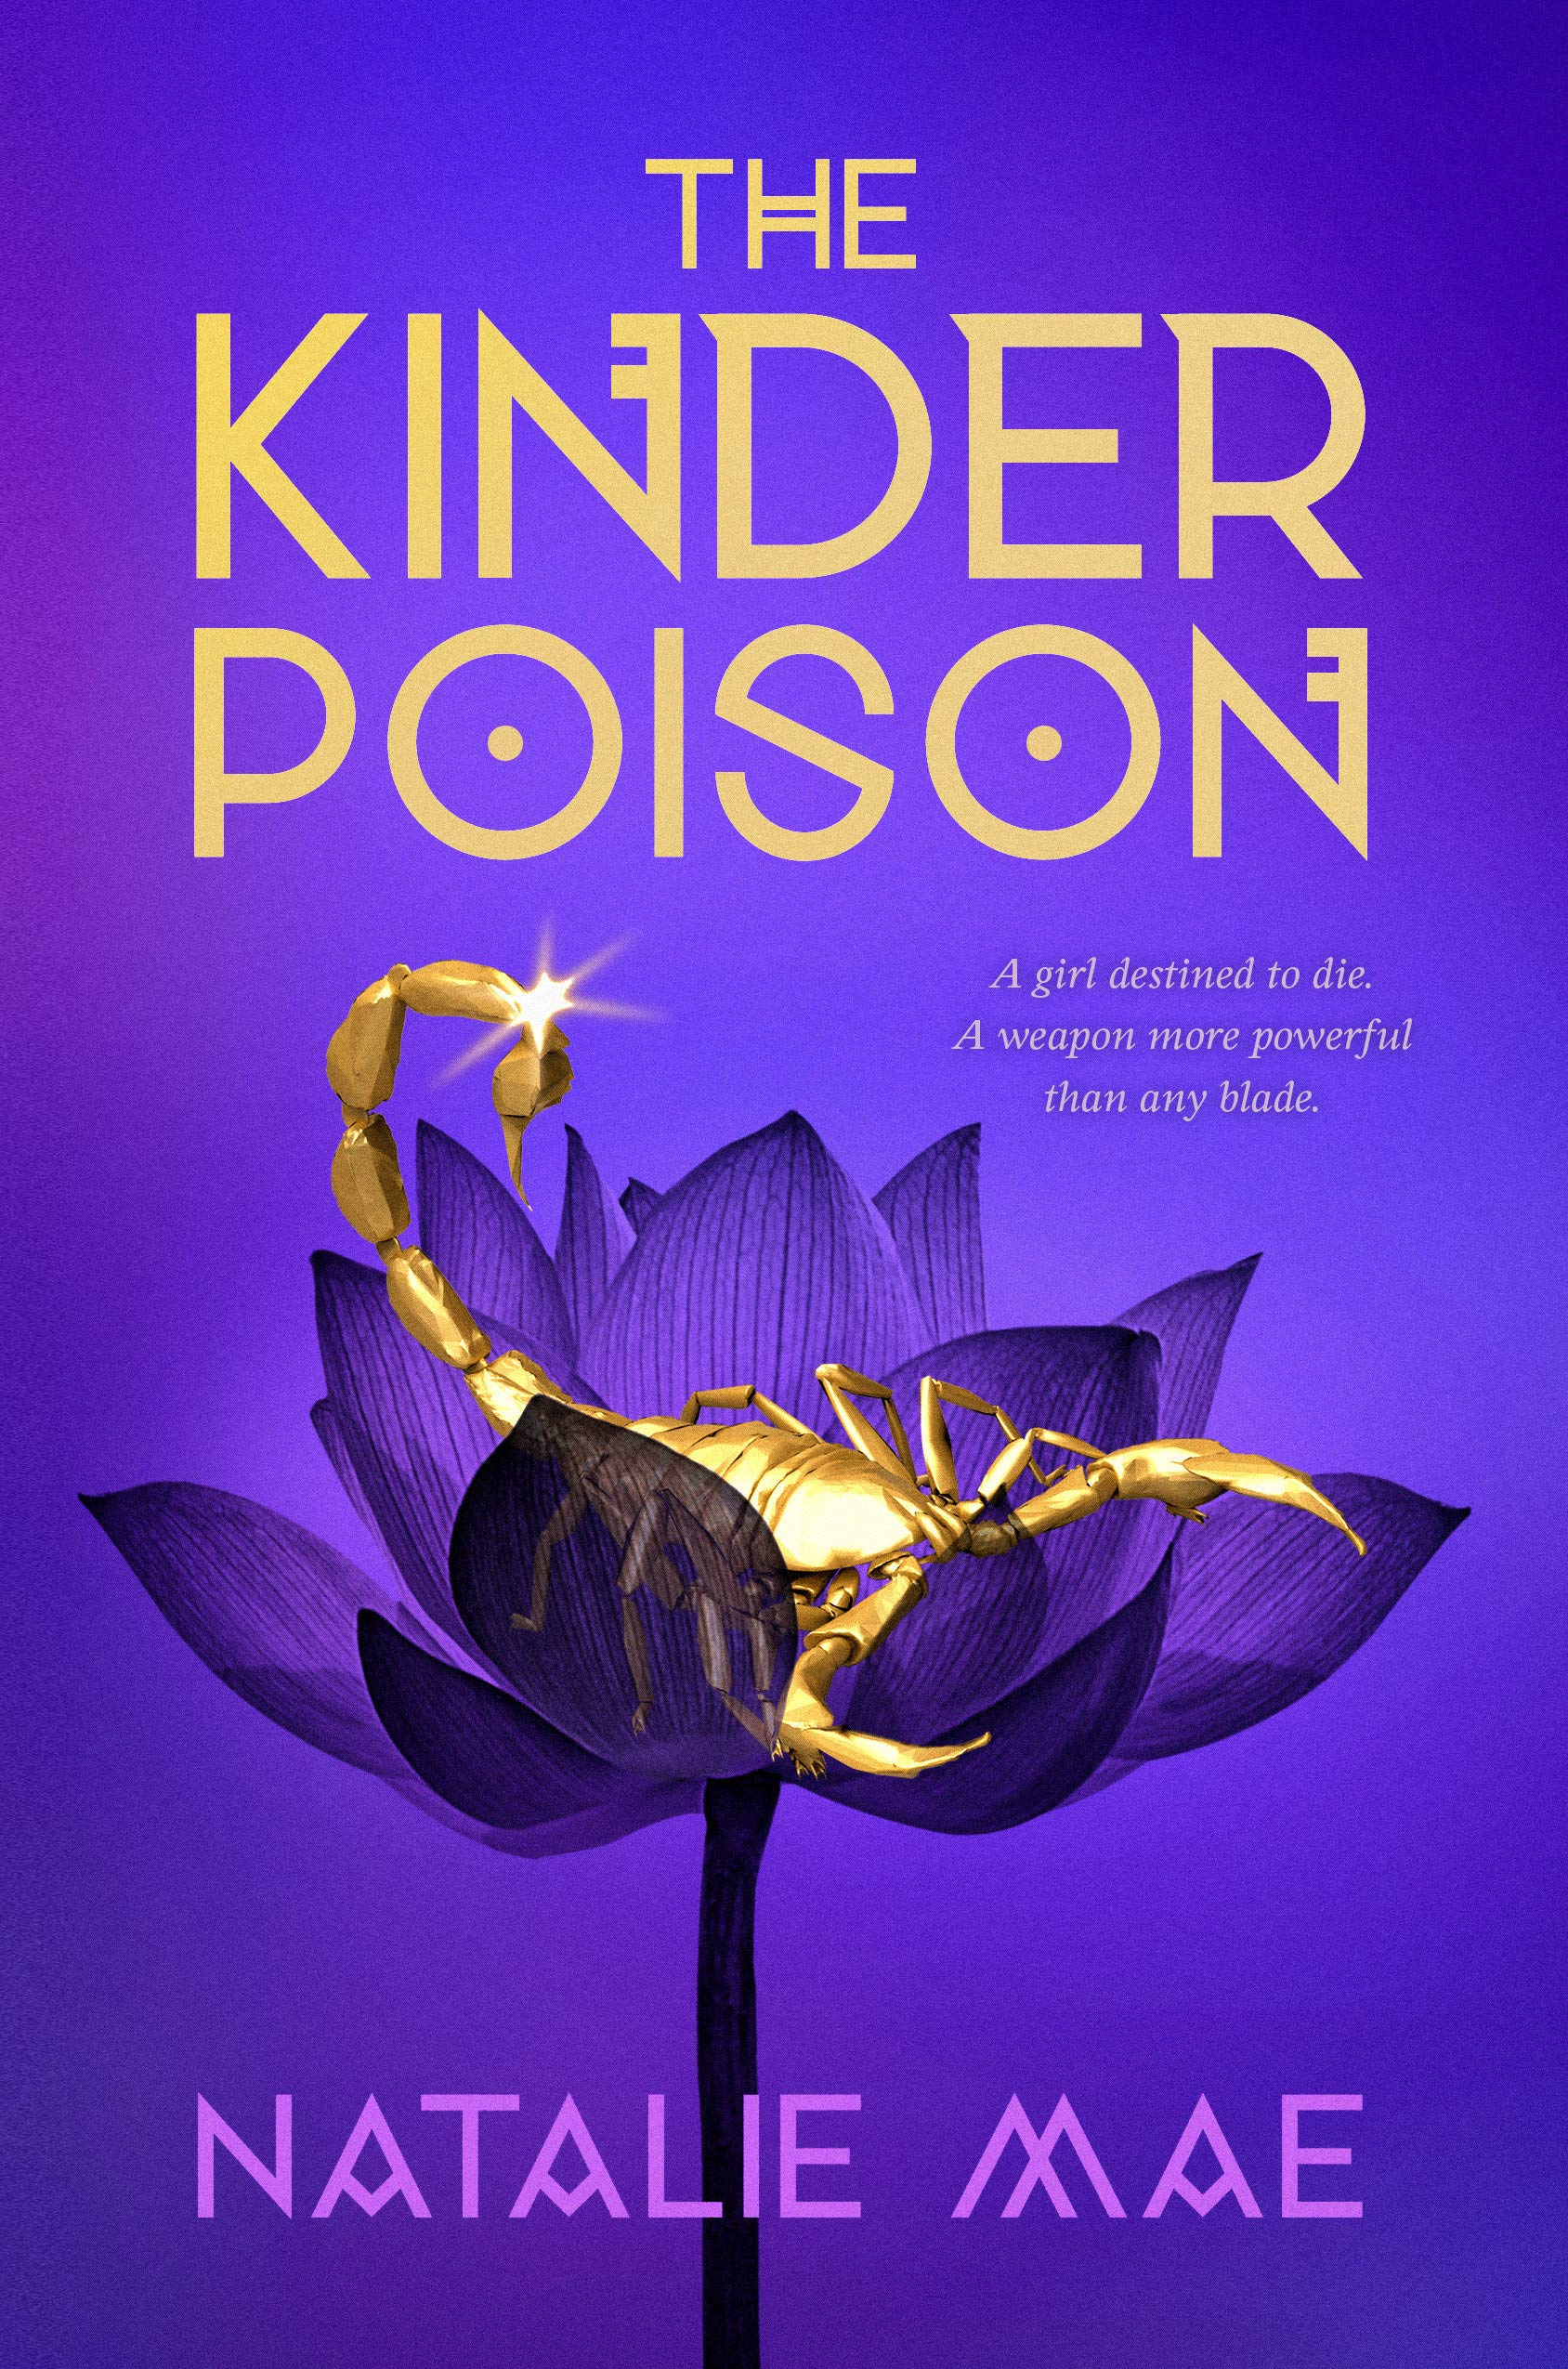 Teen Book Club - 'The Kinder Poison' by Natalie Mae